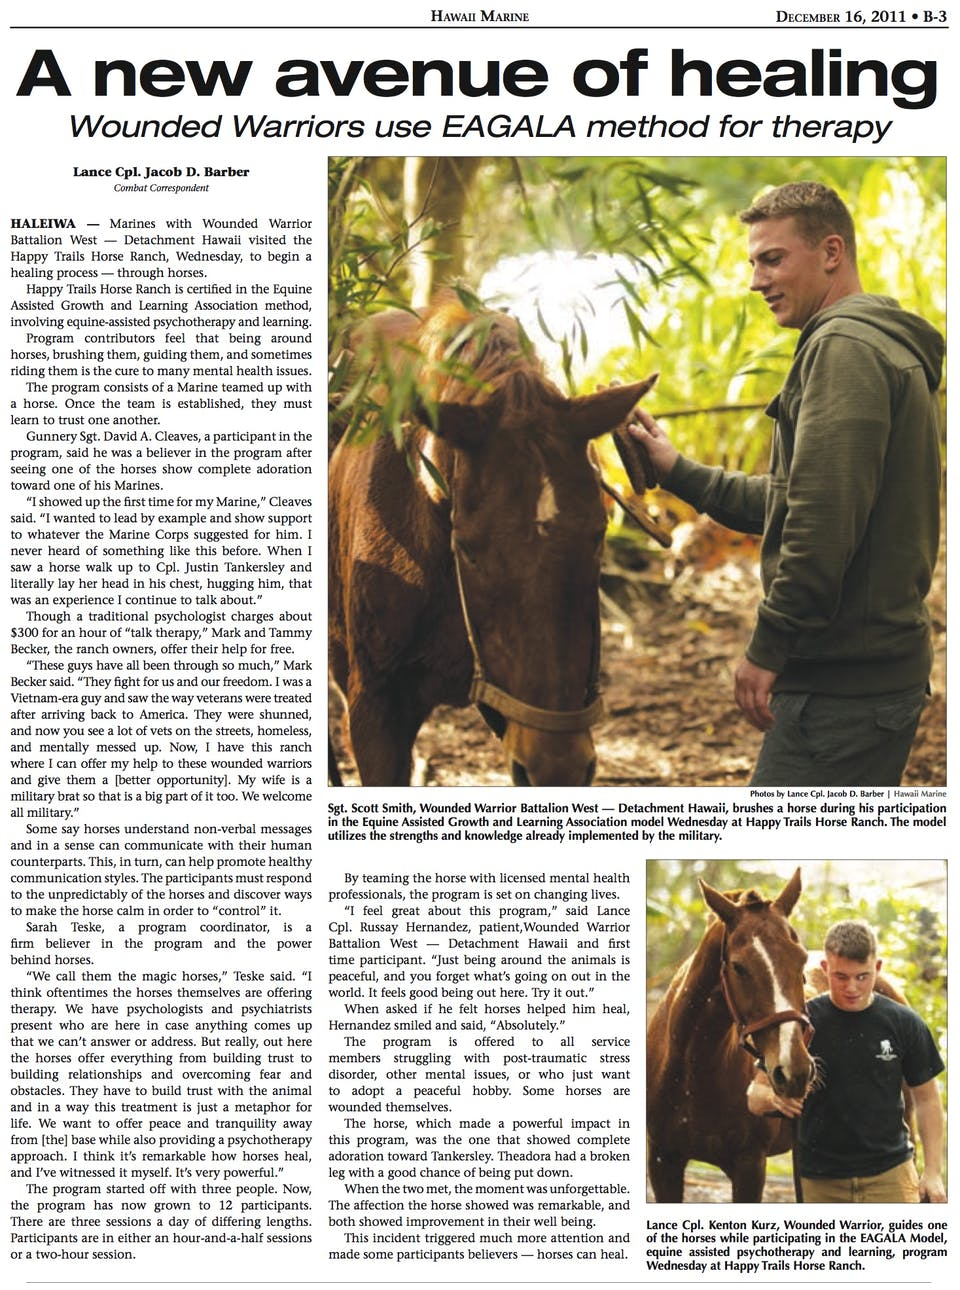 Hawaii Marine article about Happy Trails